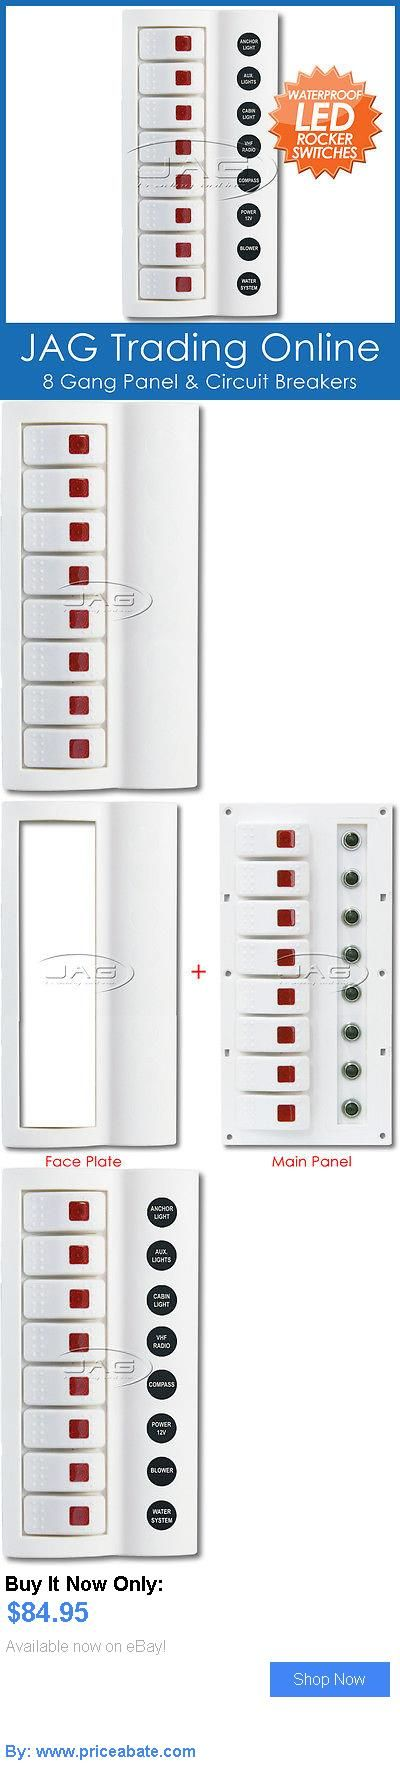 boat parts: 8 Gang White Deluxe Led Rocker Switch Panel And Circuit Breakers - Boat/Marine BUY IT NOW ONLY: $84.95 #priceabateboatparts OR #priceabate